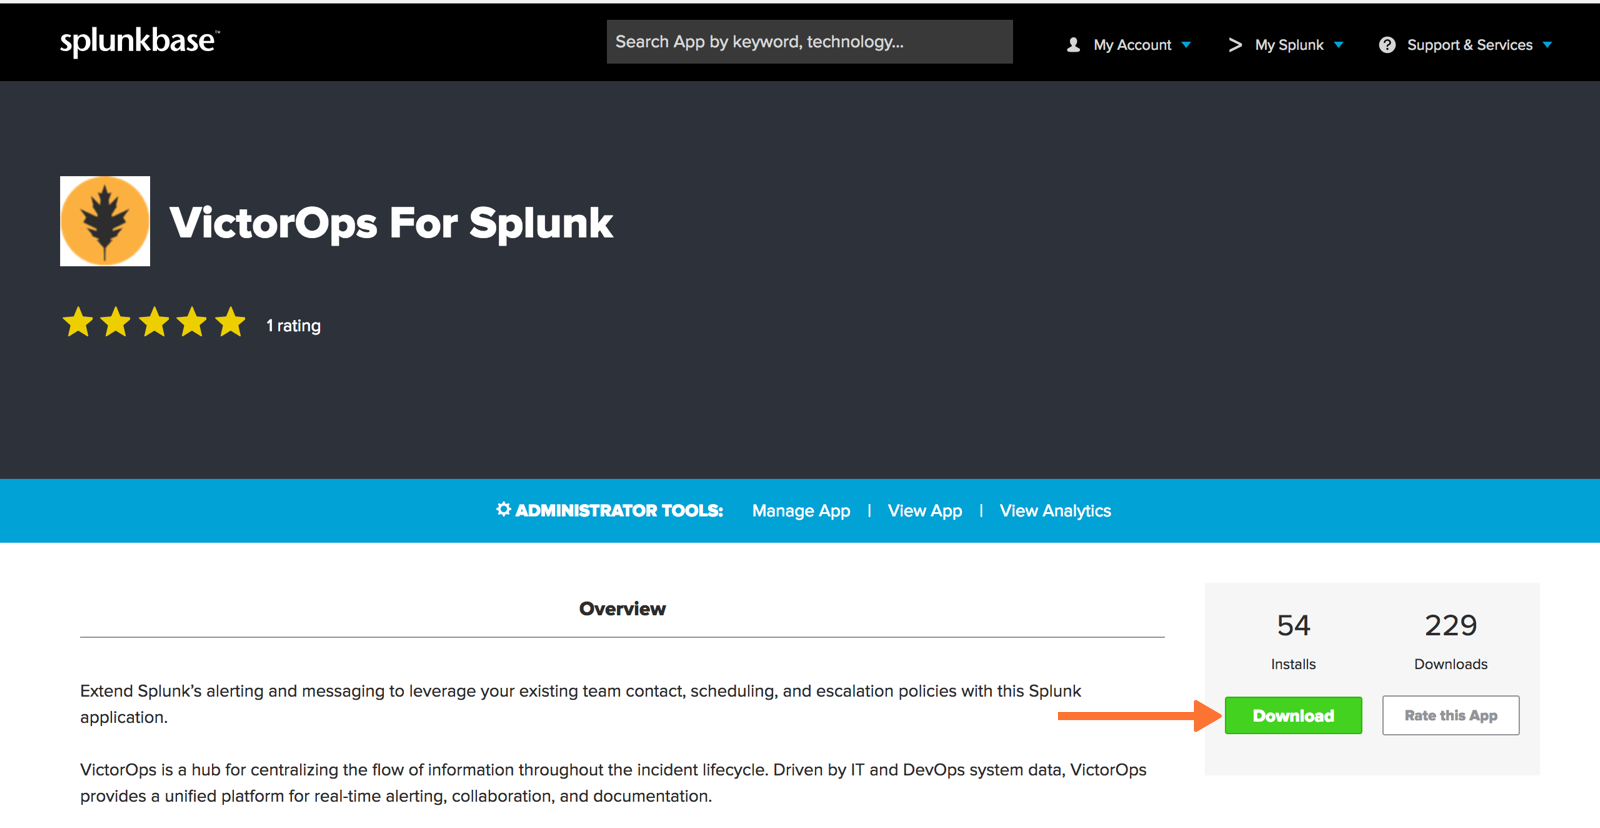 VictorOps in Splunk base